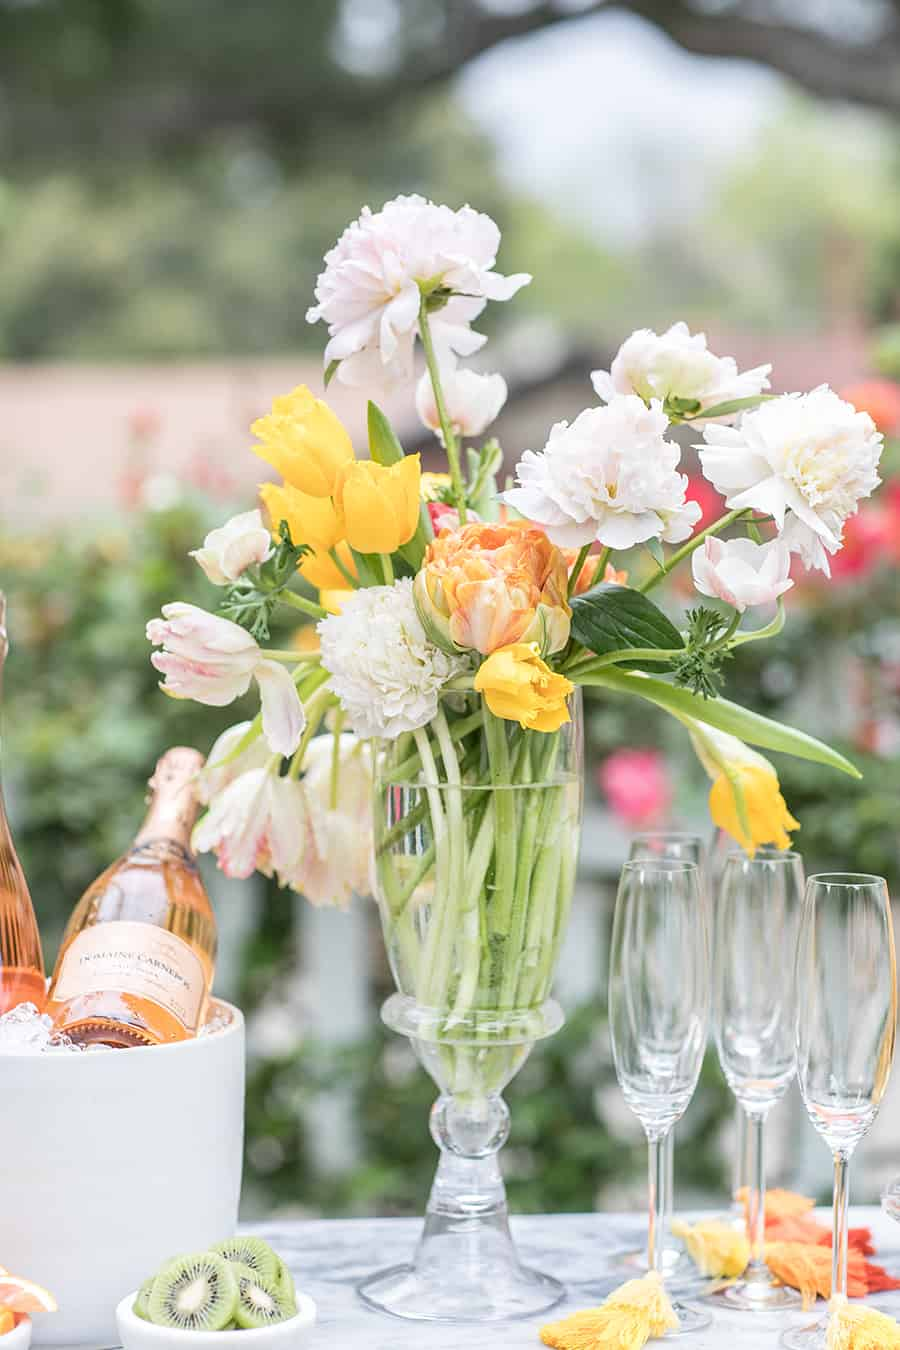 Beautiful flowers in a tall vase with champagne glasses and tassels.